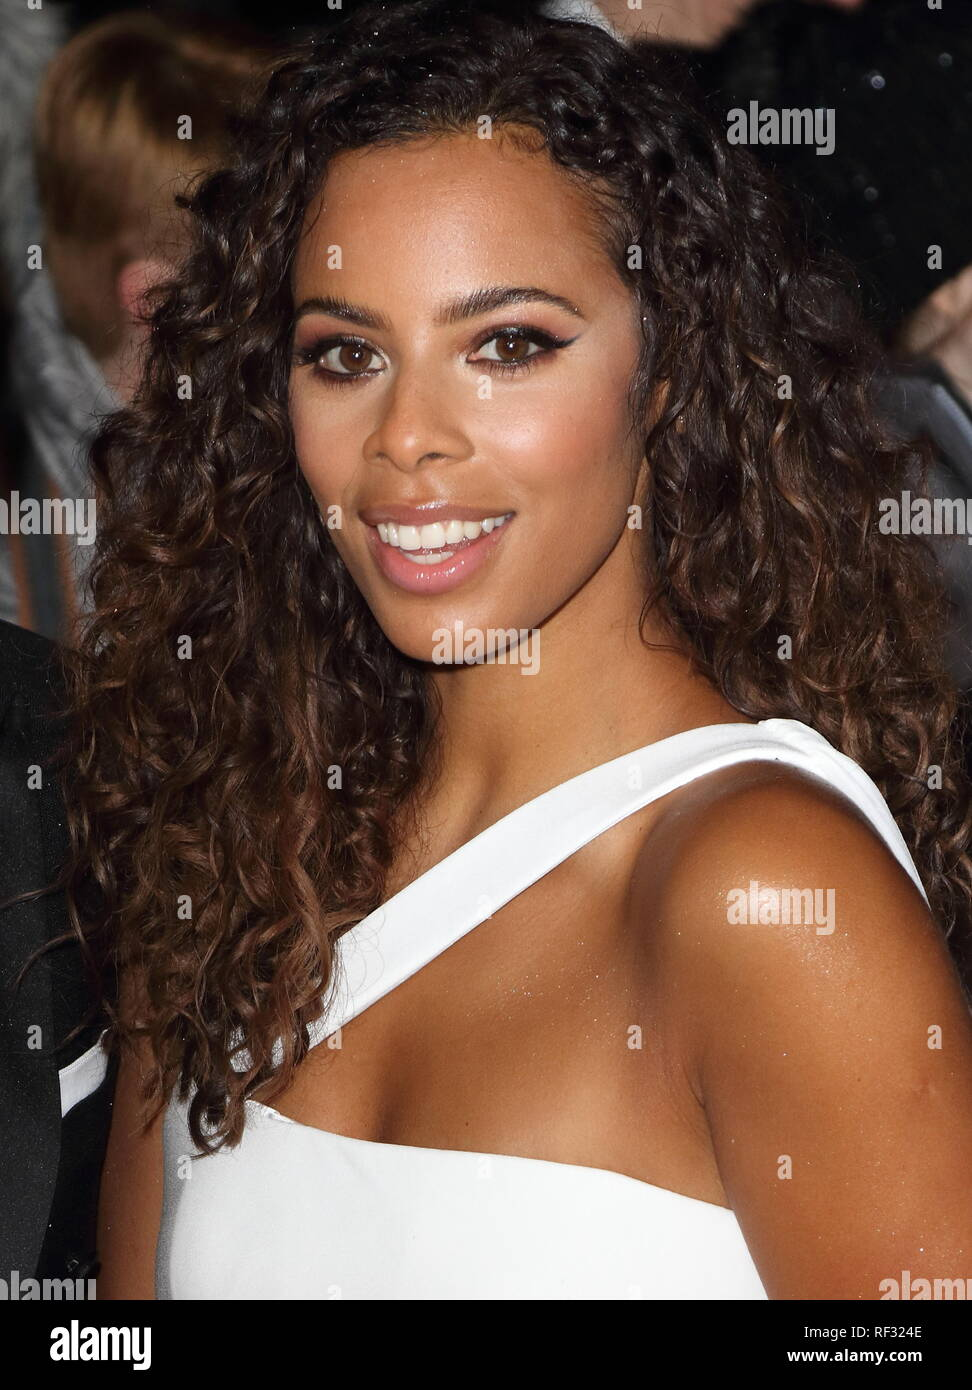 London, UK. 22nd Jan, 2019. Rochelle Humes seen on the red carpet during the National Television Awards at the O2, Peninsula Square in London. Credit: Keith Mayhew/SOPA Images/ZUMA Wire/Alamy Live News - Stock Image